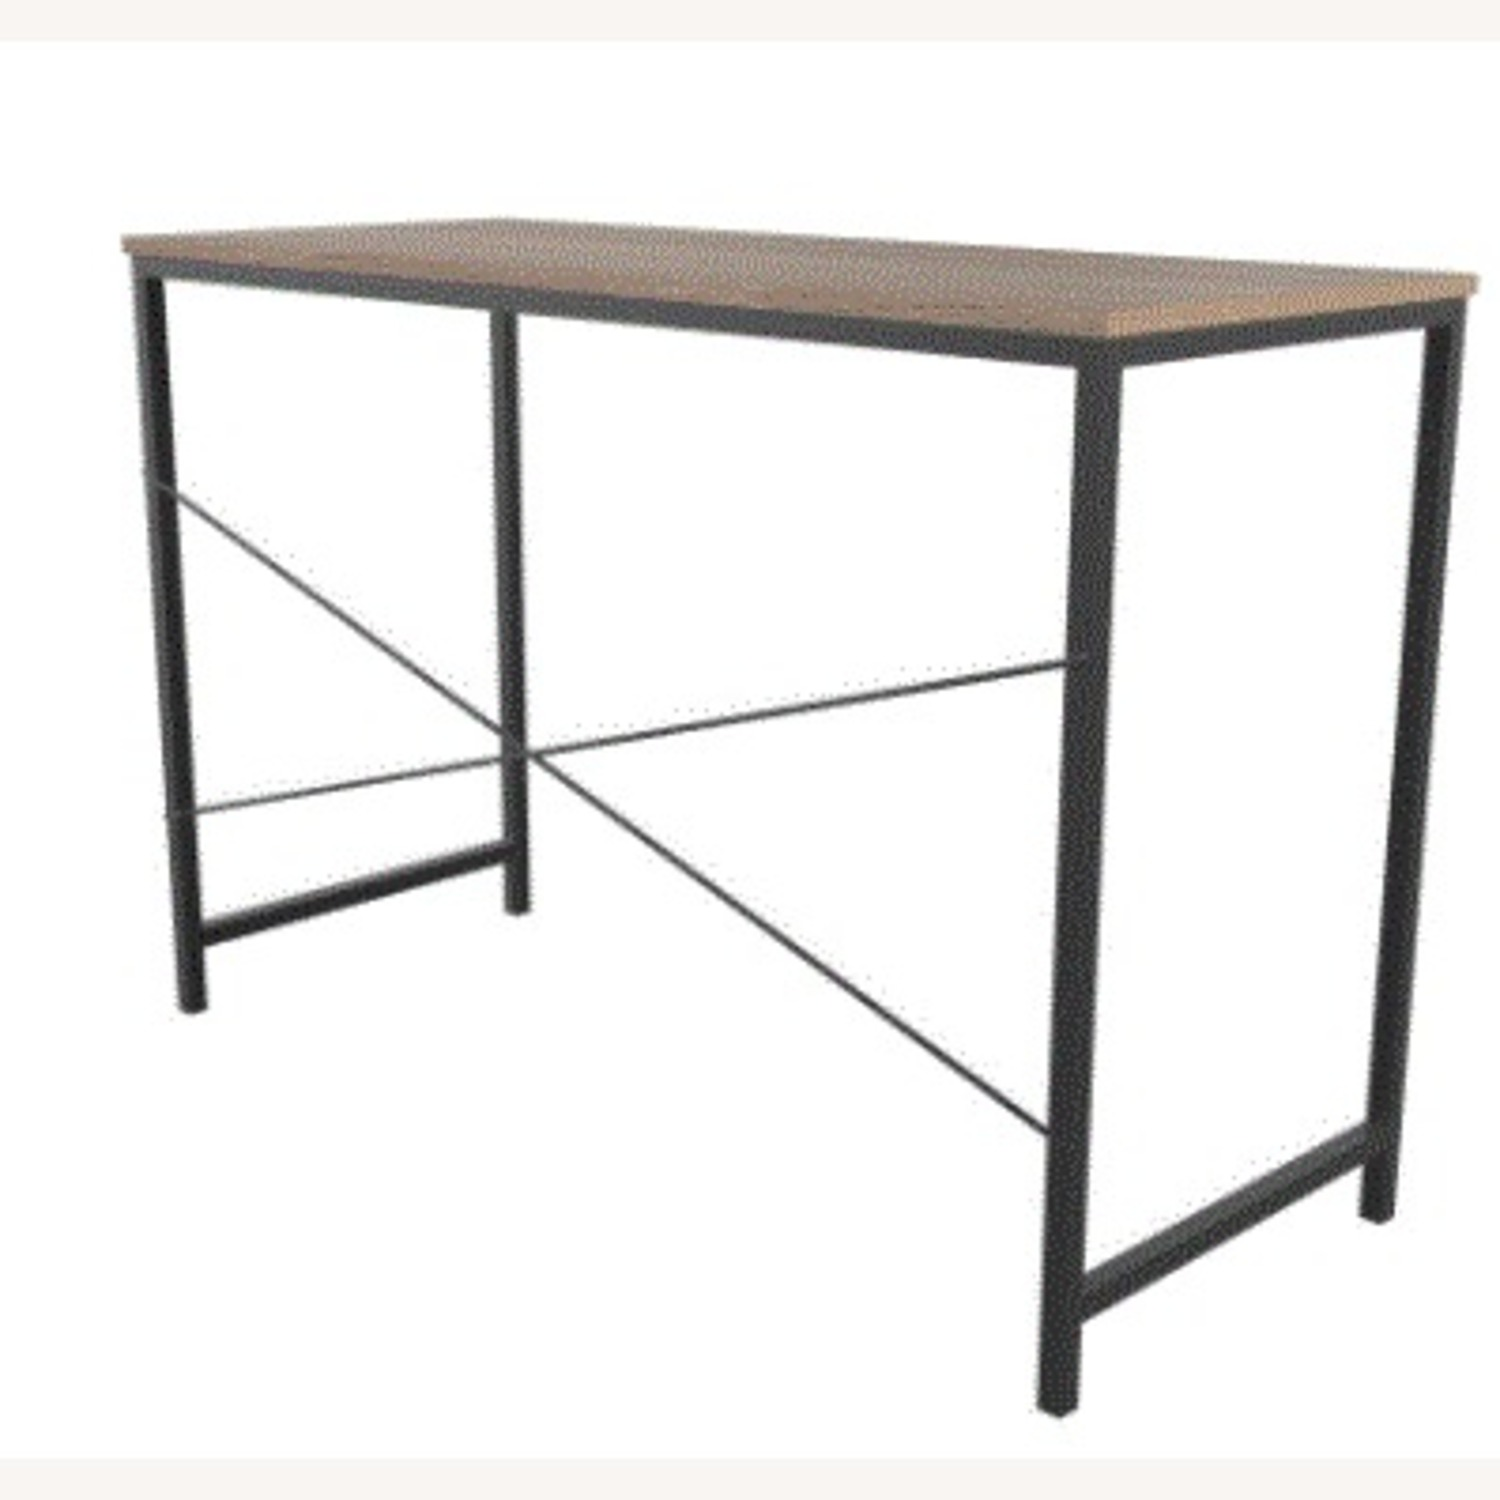 Rubbermaid Modern Console Table - image-1